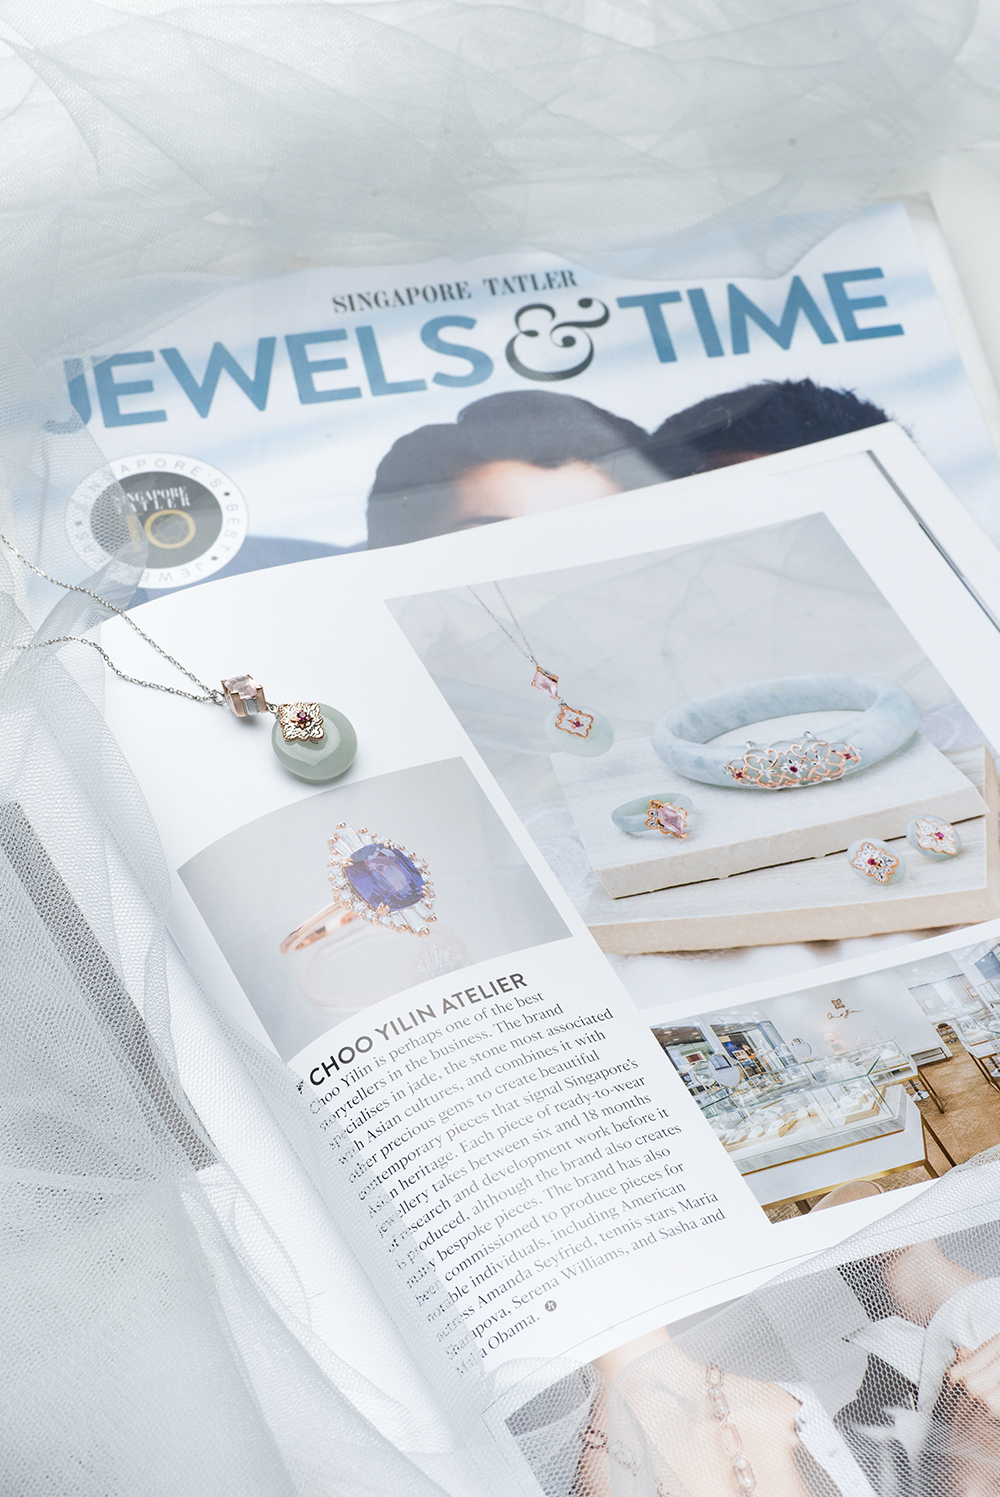 The Tatler 10 - Singapore's Best Jewellers